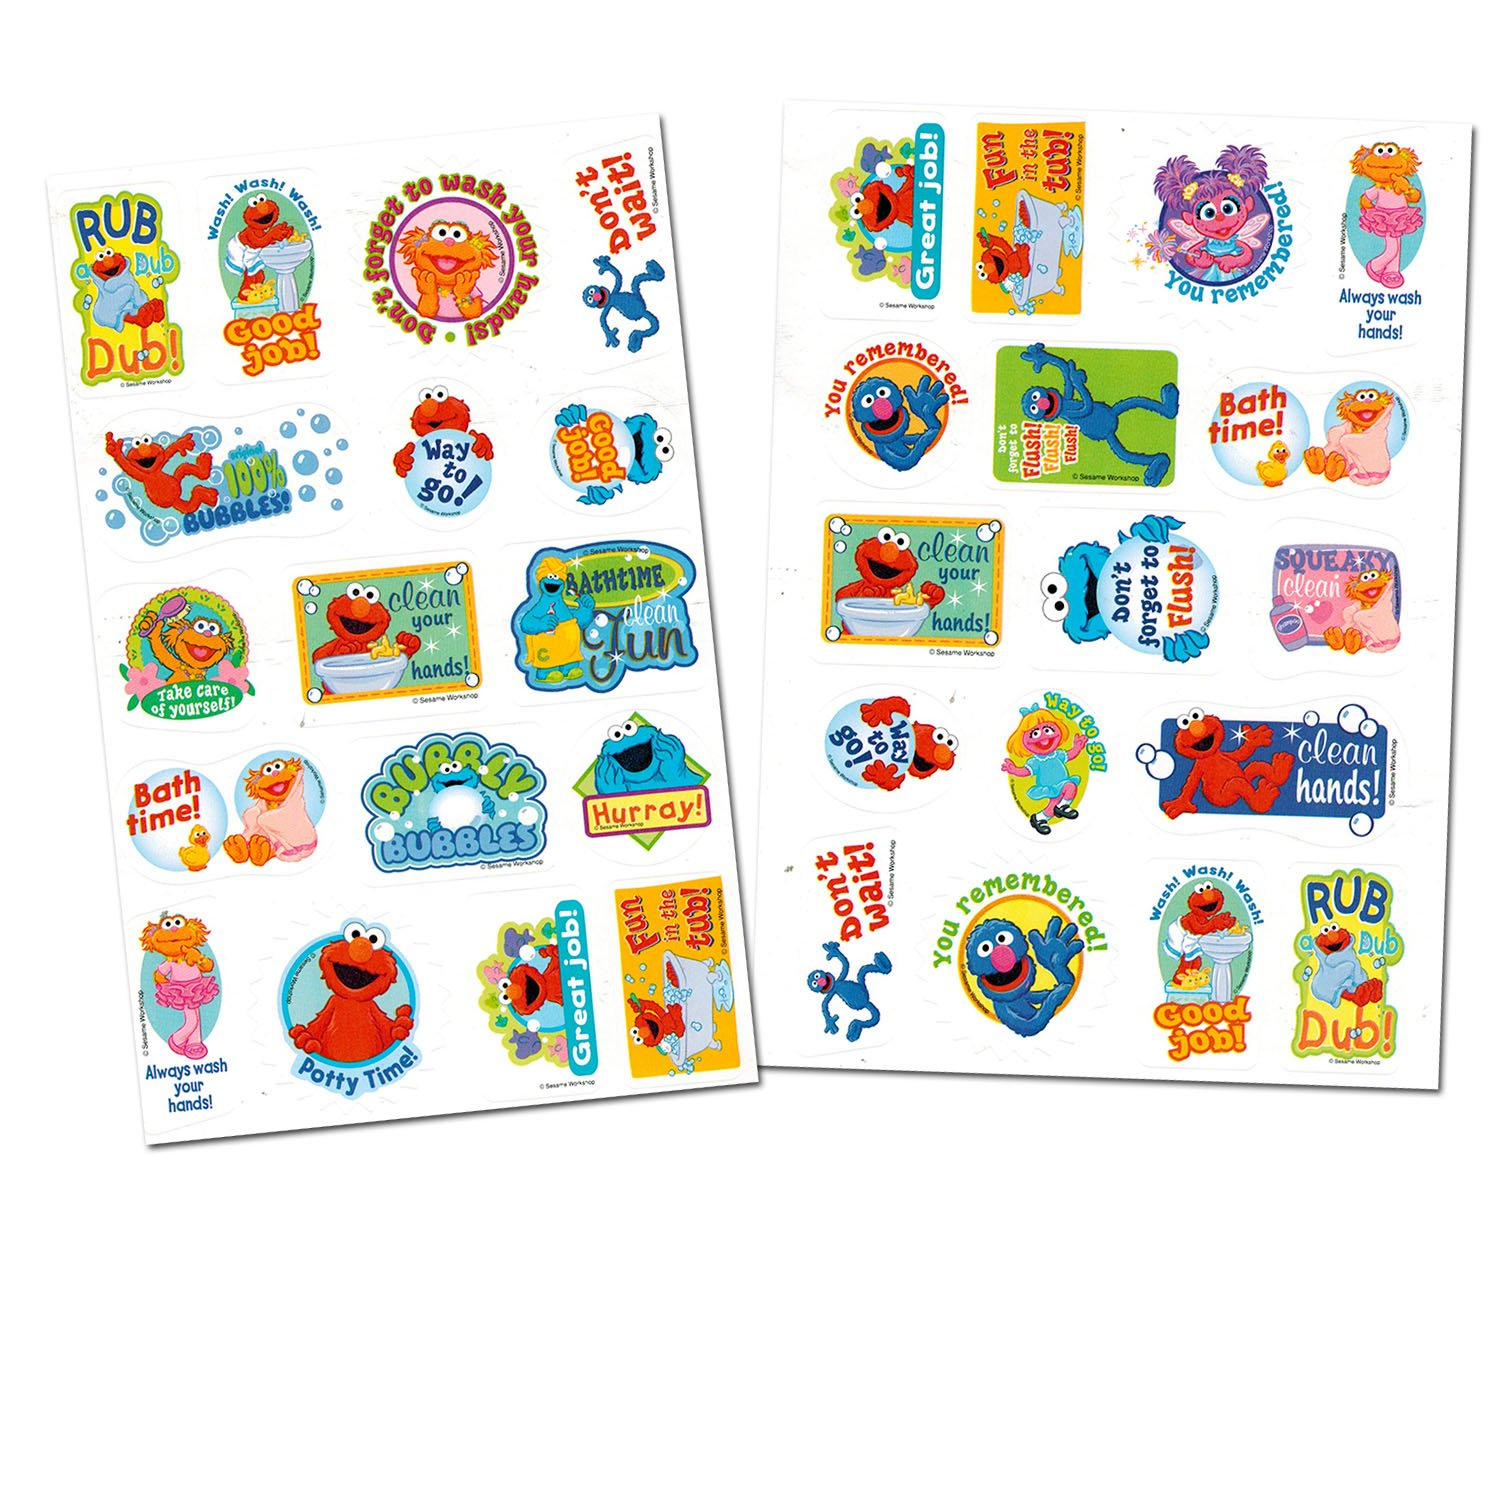 com sesame street potty time potty training coloring com sesame street potty time potty training coloring and activity set progress chart and reward stickers baby